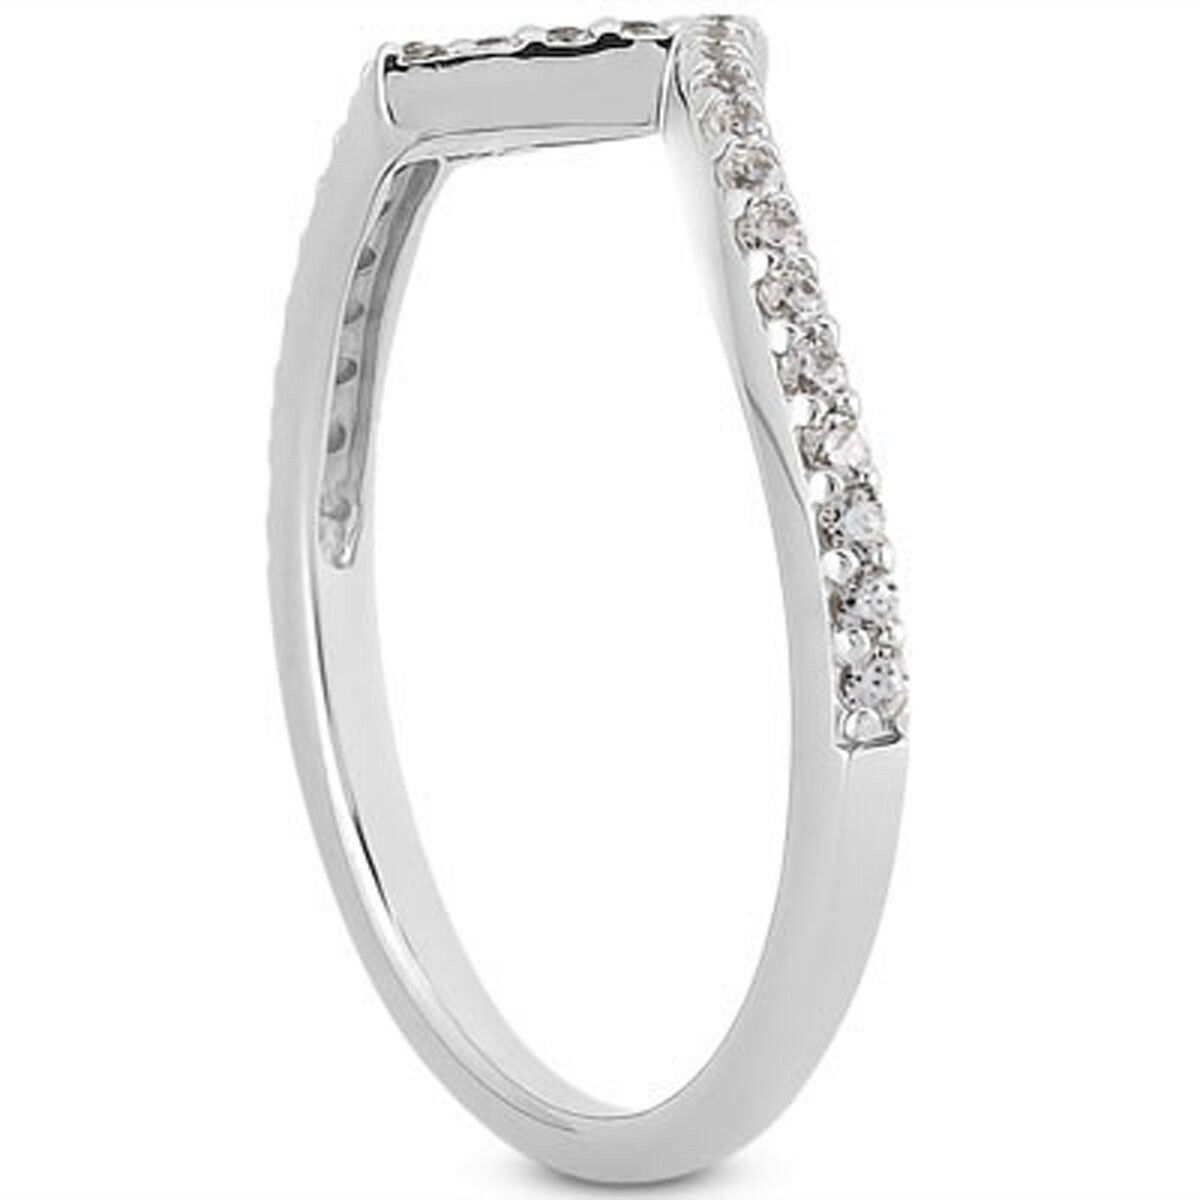 The exciting design of this modern ring brings an artistic appeal to its unique appearance suggesting motion and brilliance this ring is emblematic of the moment when love hits you like a bolt of lightning. Glittering diamonds decorate the ring half way around. Size 7.5 Rhodium Polish: No Line Item Type: Diamond Metal Name: White Gold Metal Content: 14K Style Name: Diamond Accent Width: 1.6 mm Average Color: I (Diamond) Average Clarity: SI2 (Diamond) Min ct. tw.: 0.26 (Diamond) Shape: Round (Dia